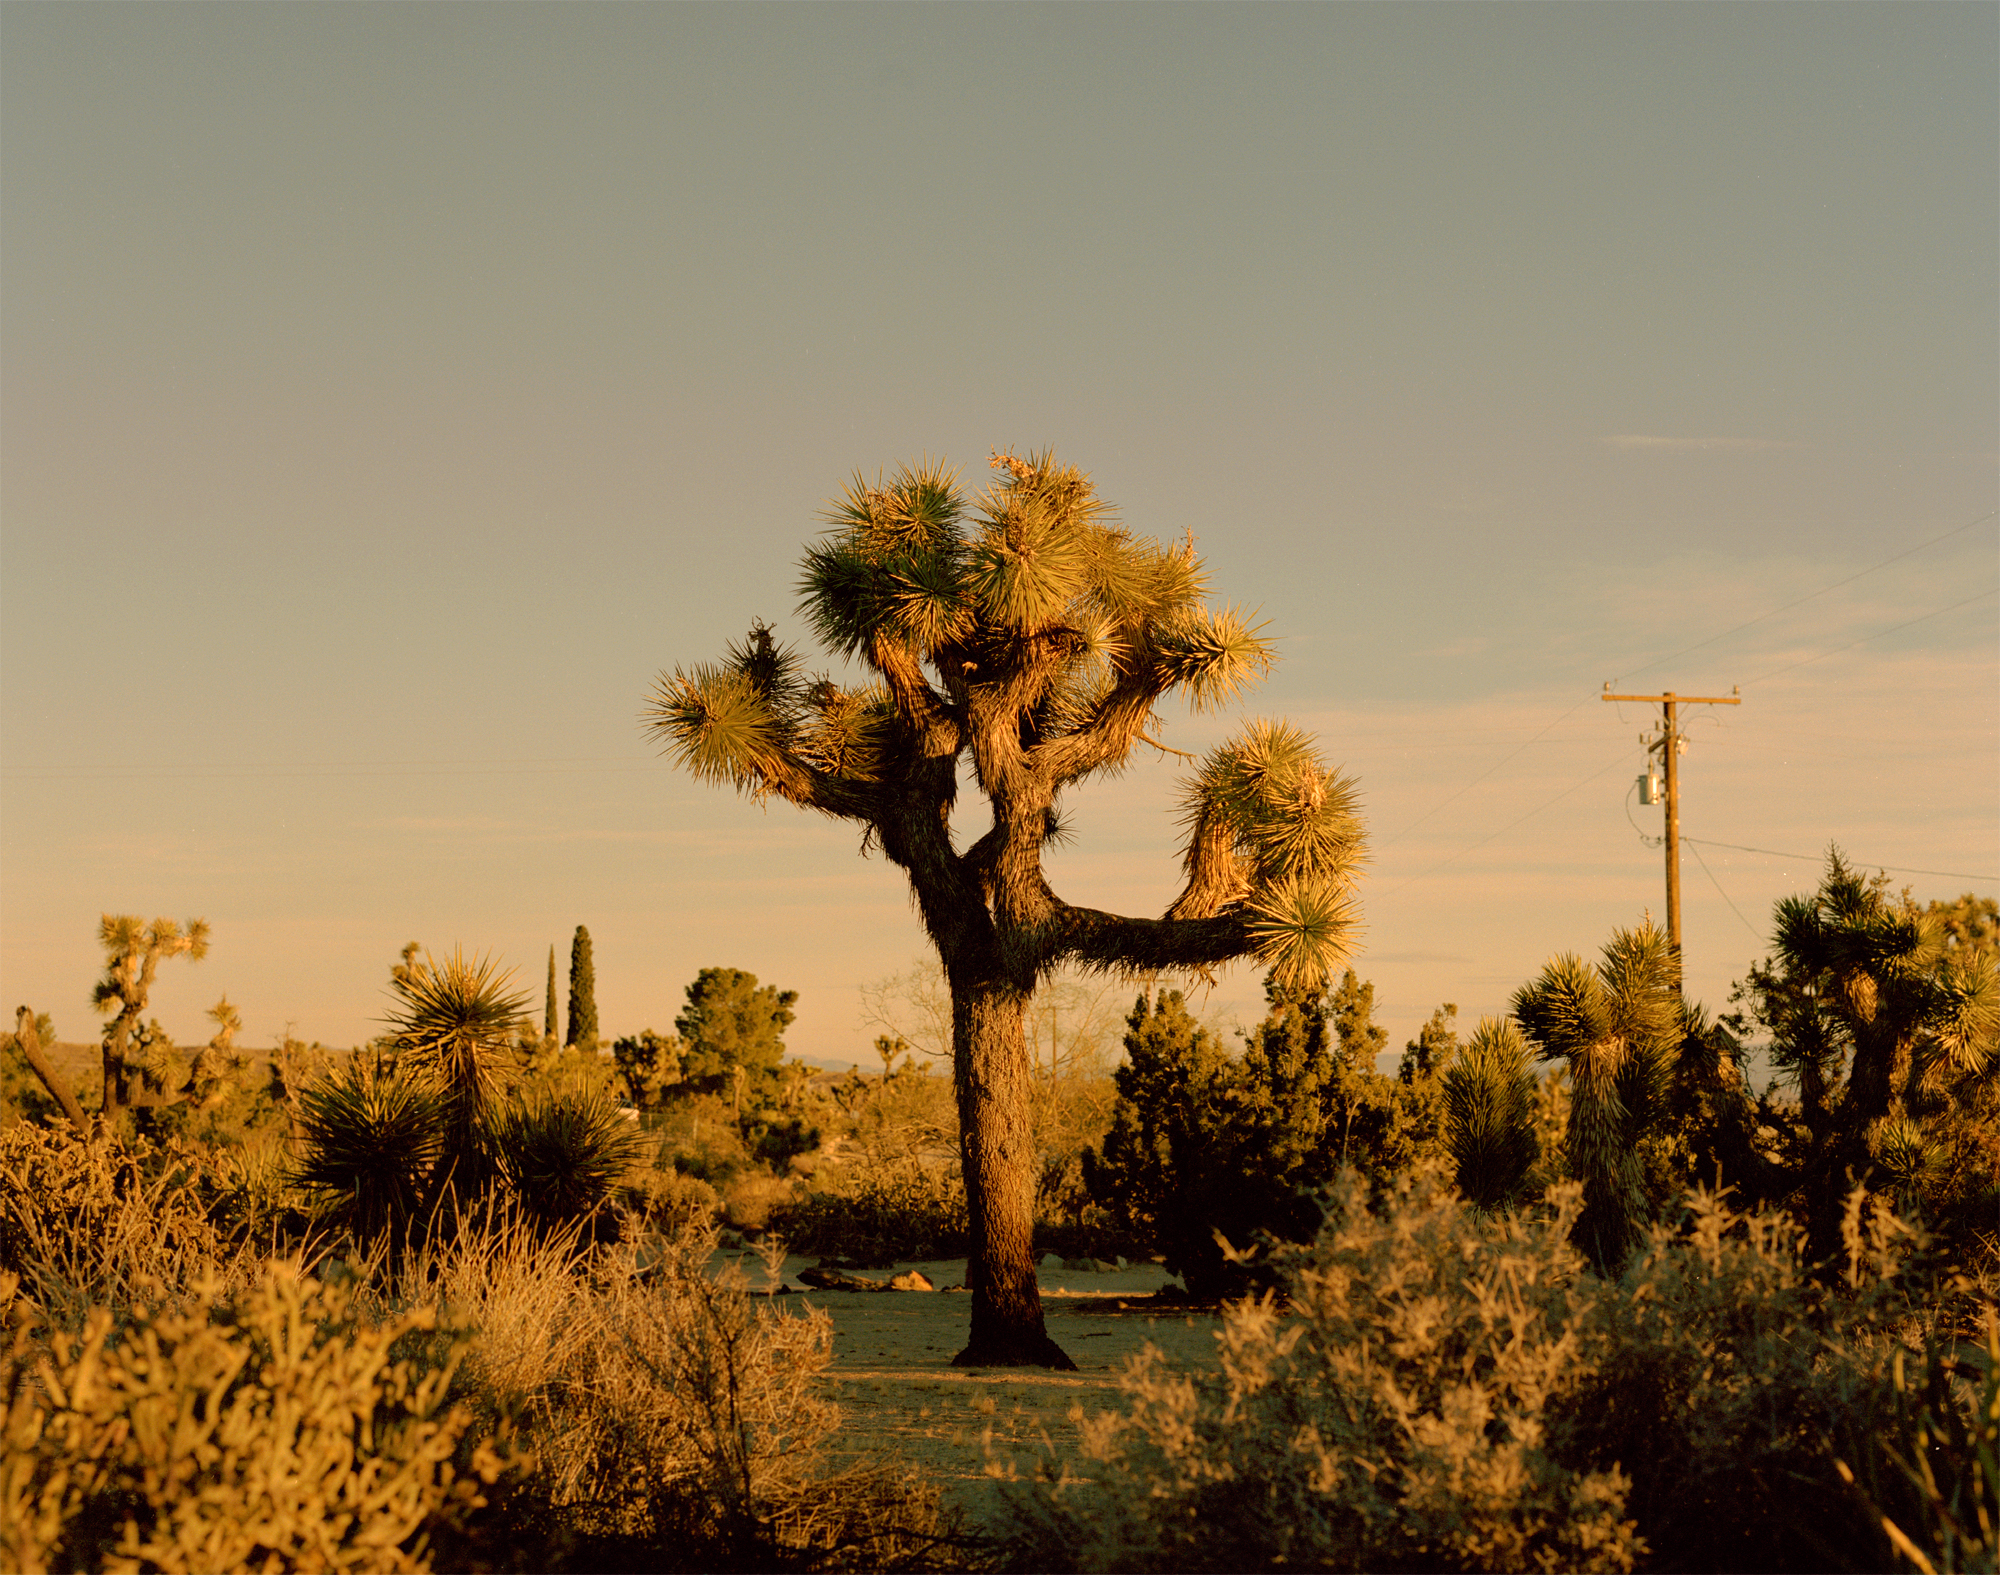 Sam_Wright_Joshua-Tree.jpg